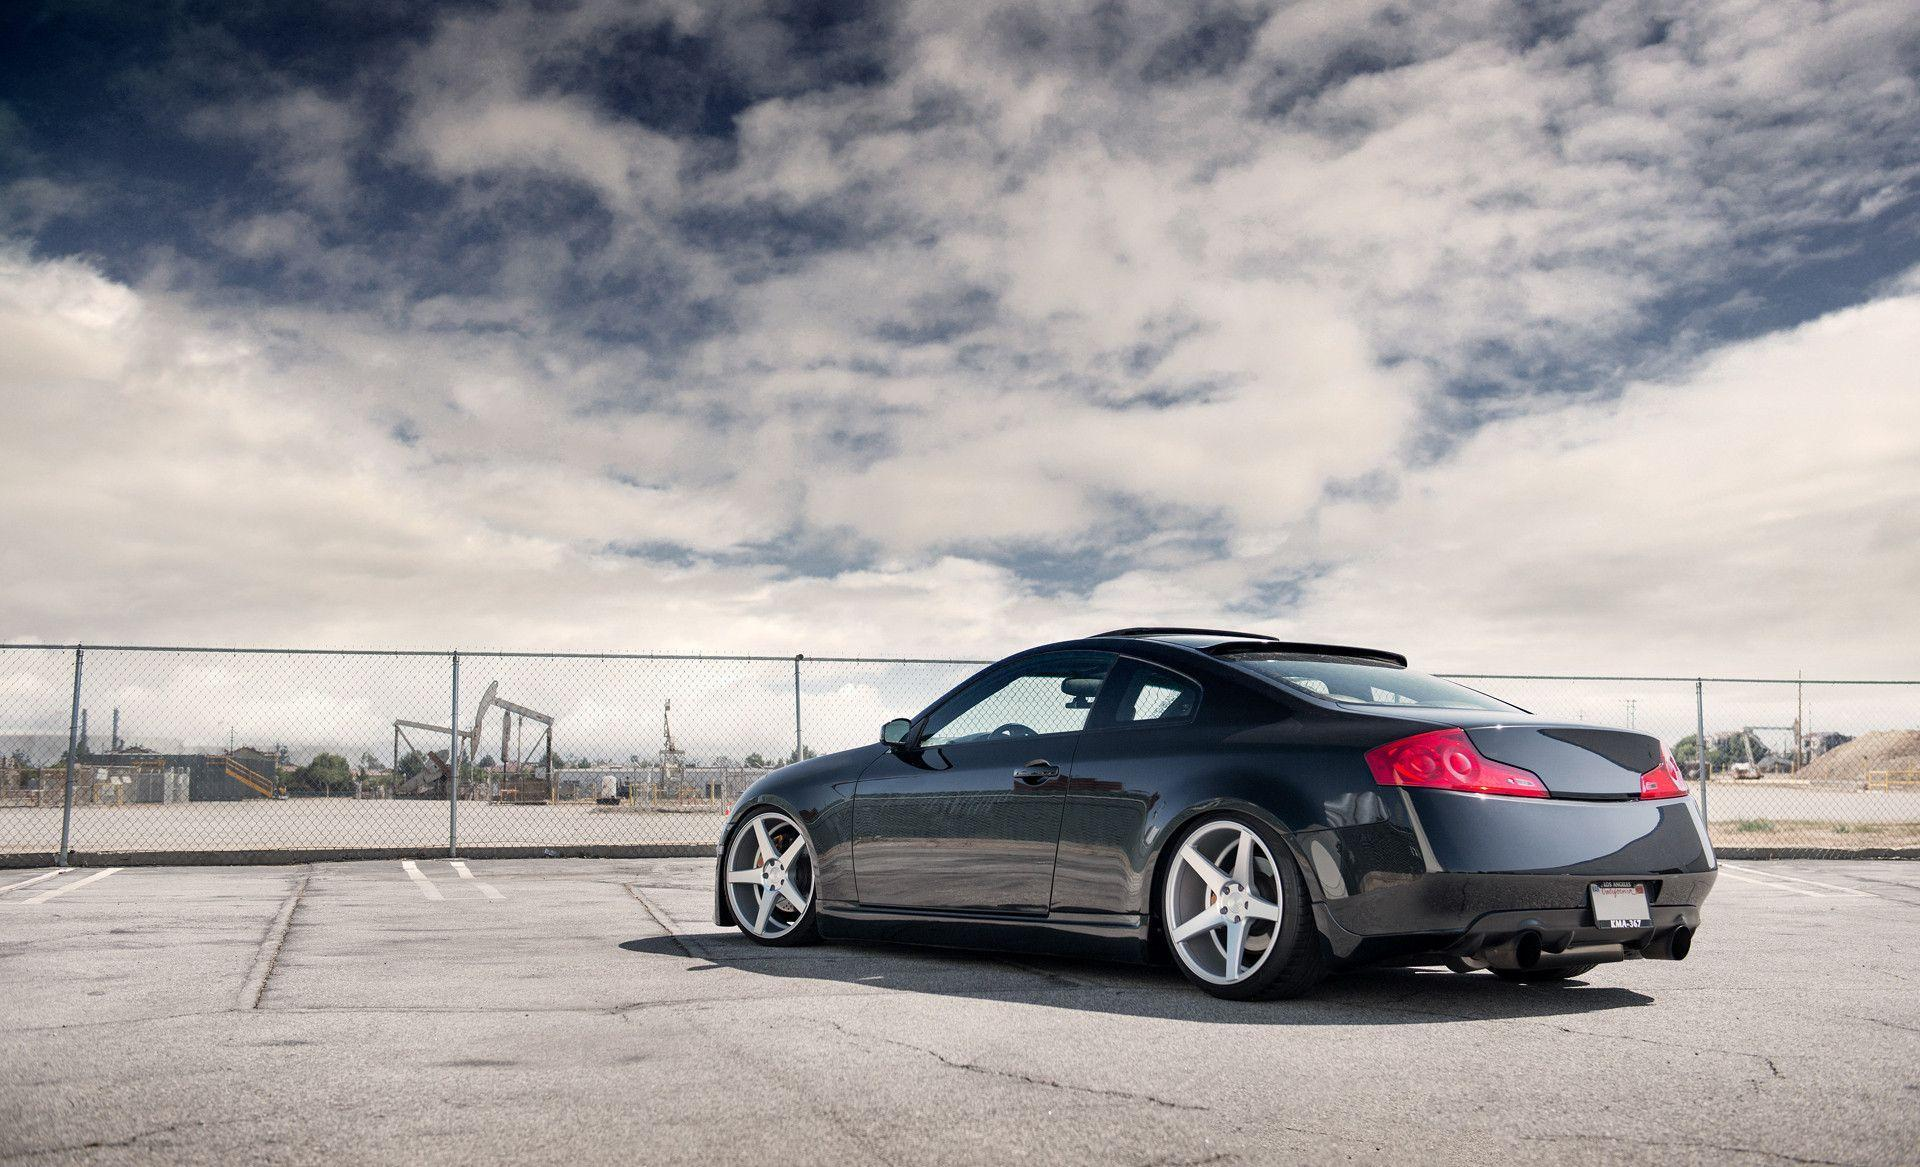 2 Infiniti G35 Wallpapers